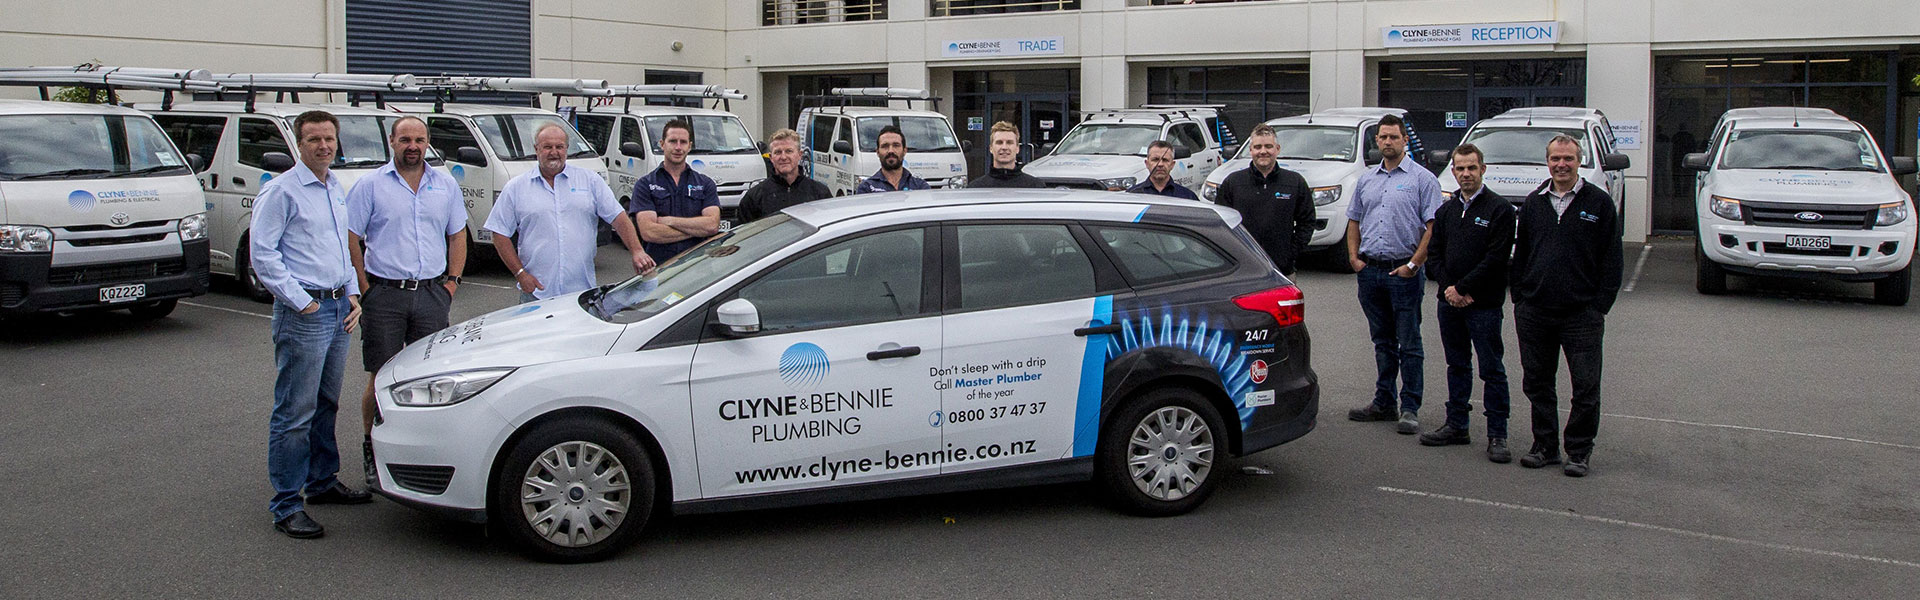 Clyne & Bennie Staff Photo with Signage